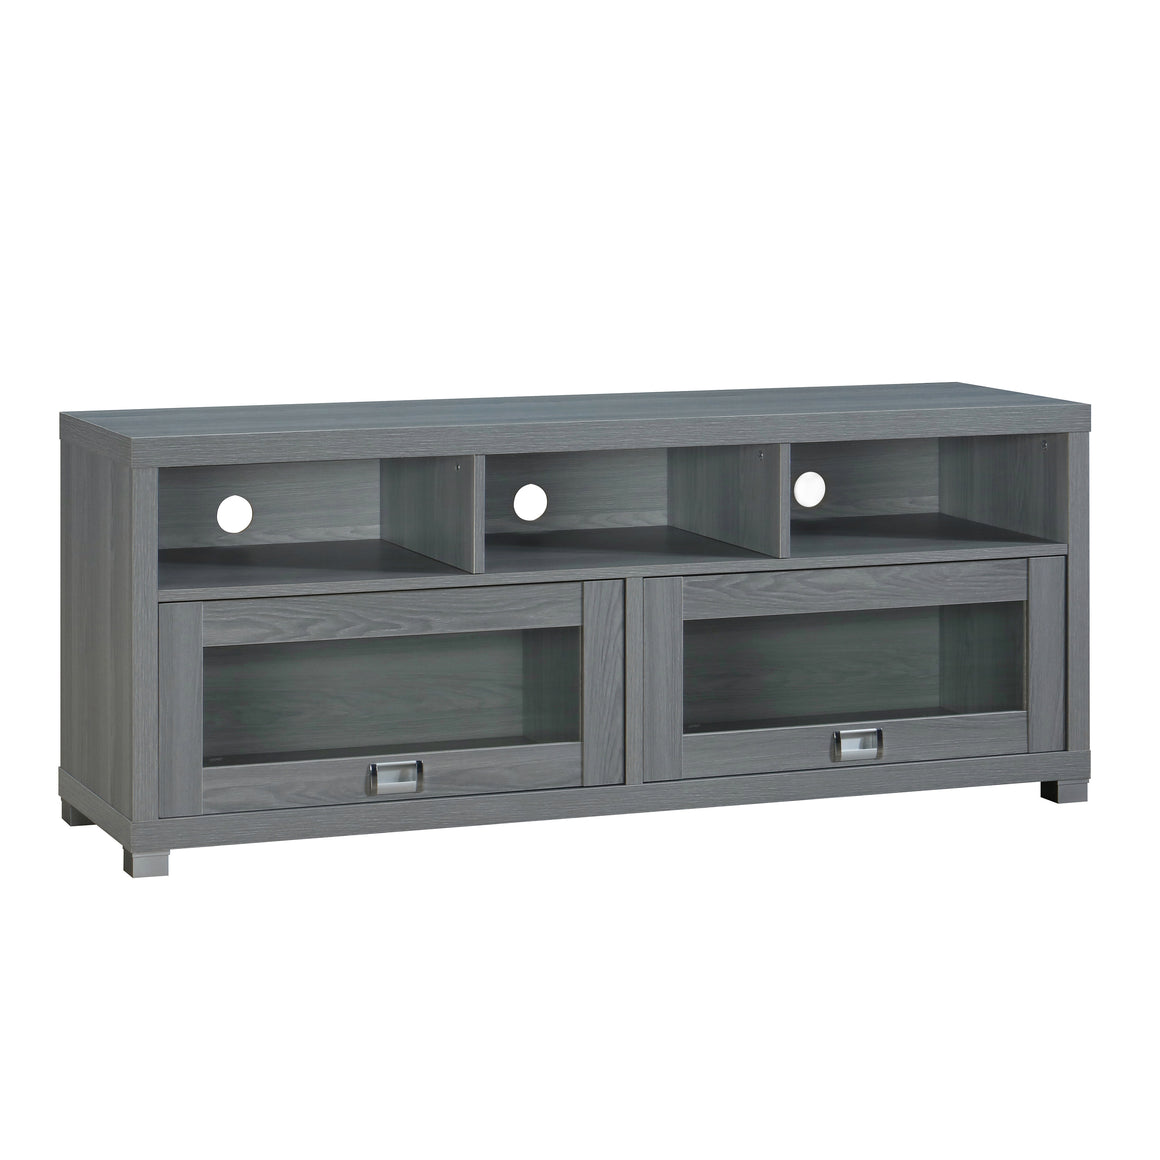 Techni Mobili Durbin TV Stand, for TVs up to 75""